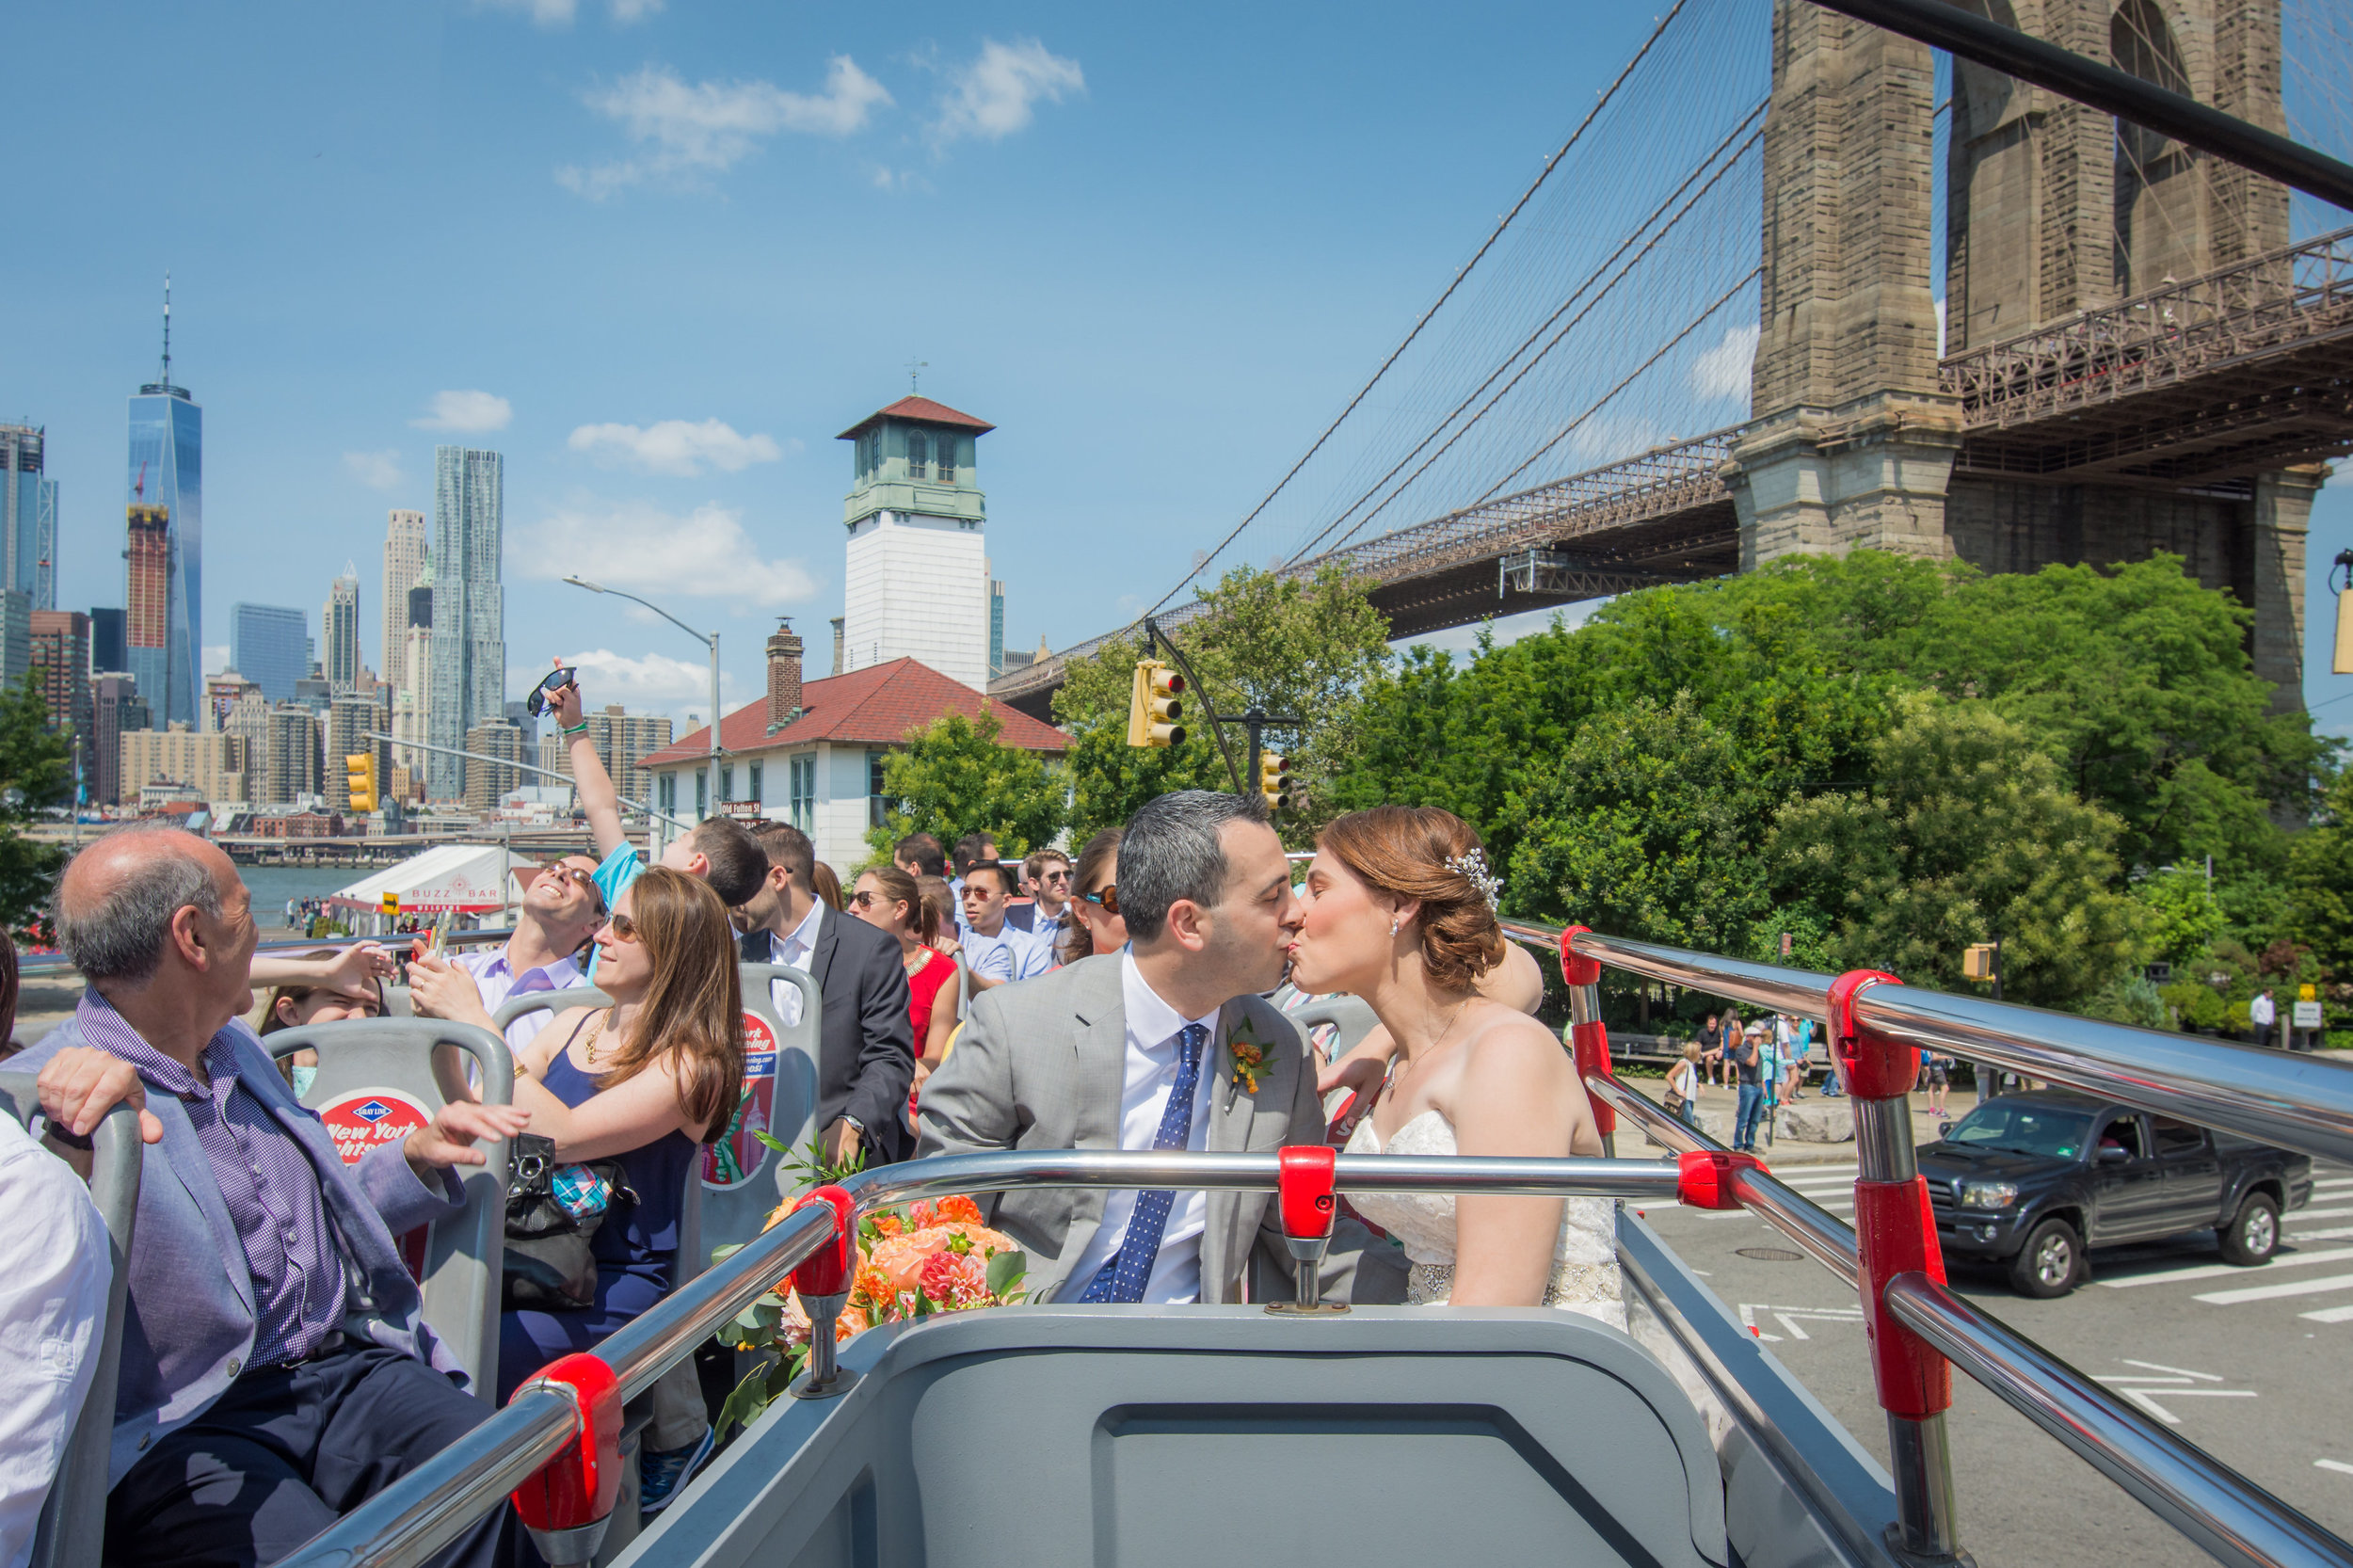 Allison & David Romantic Wedding in Dumbo & Chelsea Pears by Unveiled-Weddings.com #SunsetTerrace #weddingdress #NewYorkWedding #Brooklynwedding #ChealseaPiers